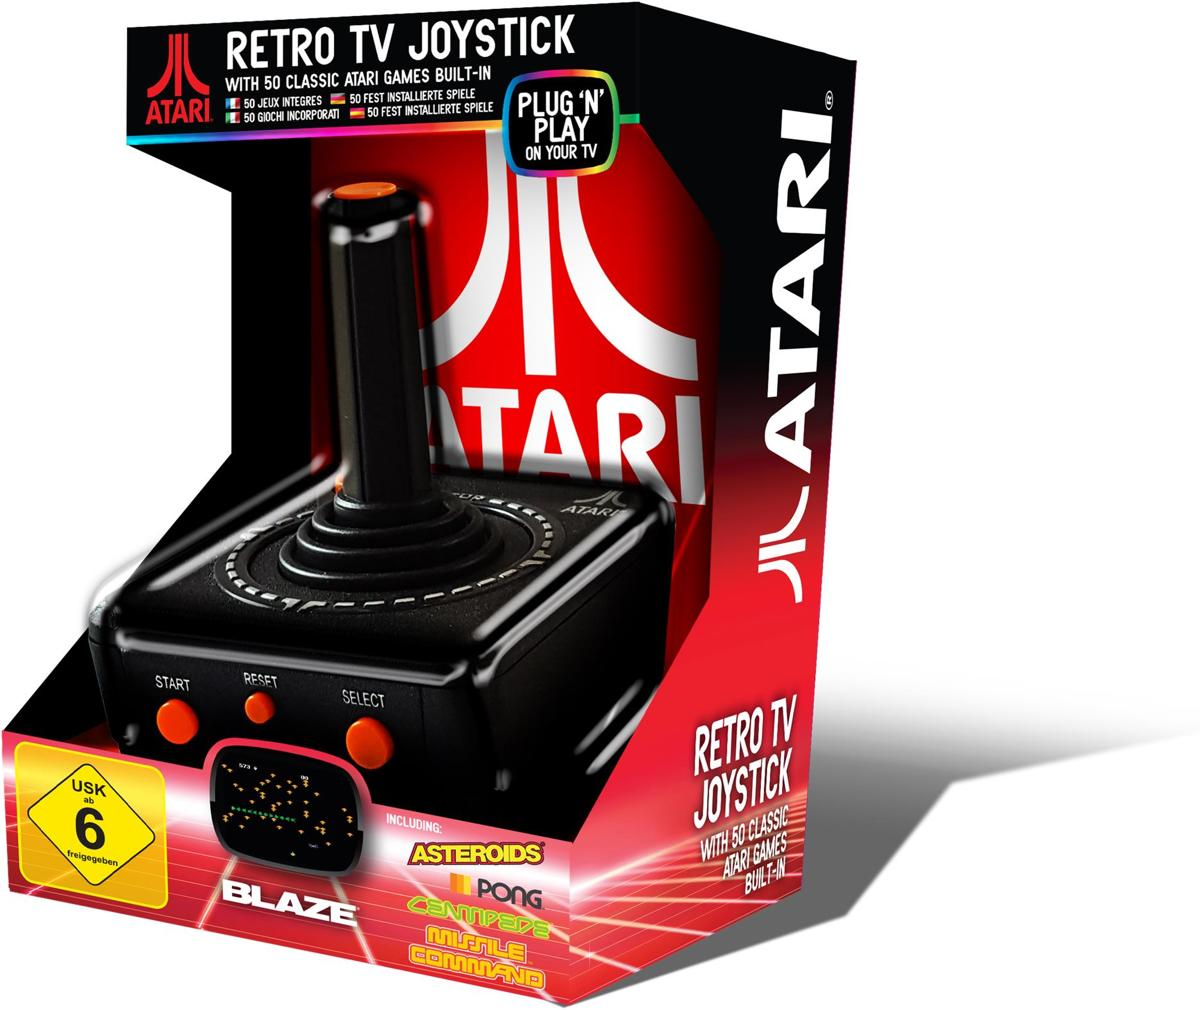 Retro TV Joystick - Plug & Play (50 games)